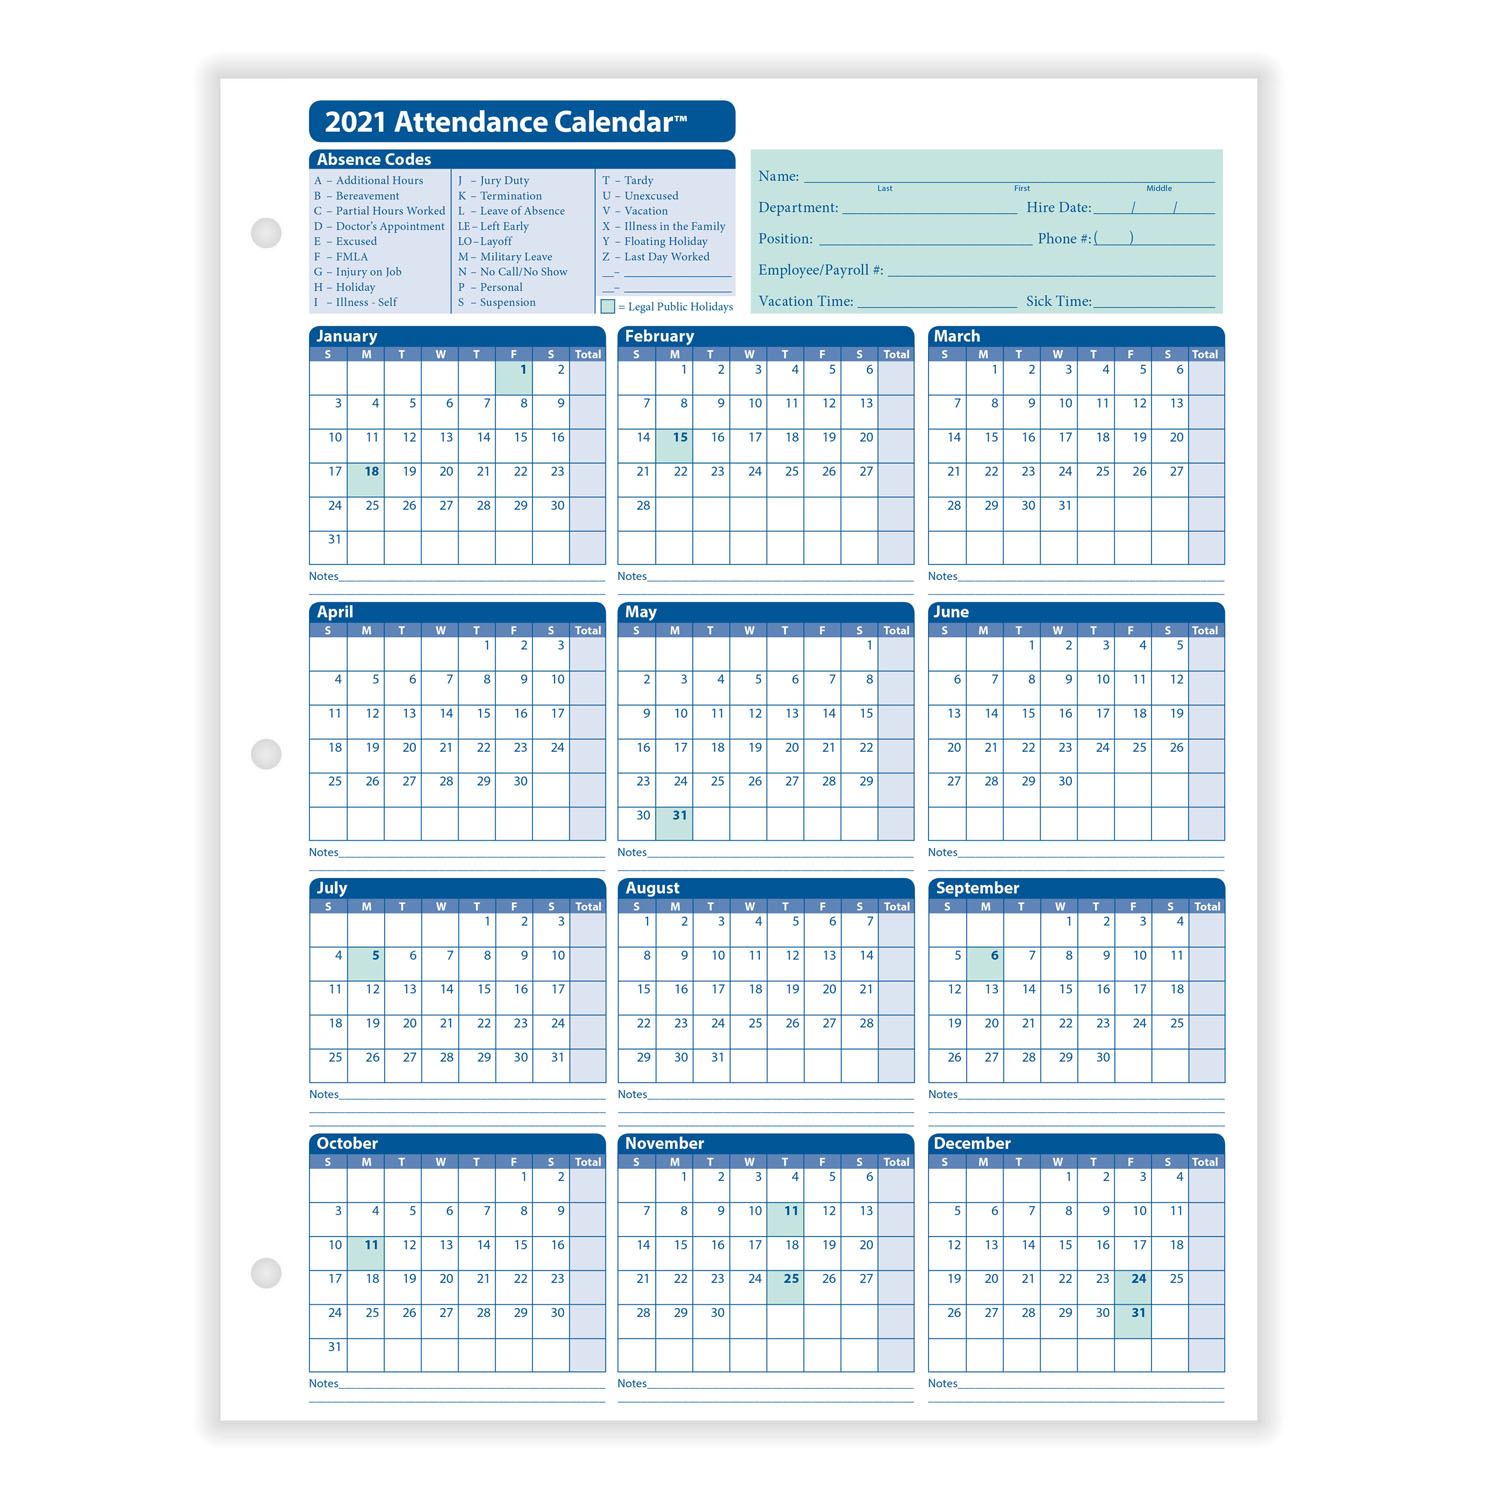 2021 Employee Attendance Calendar Yearly Employee Attendance Calendar | Yearly Calendar | HRdirect